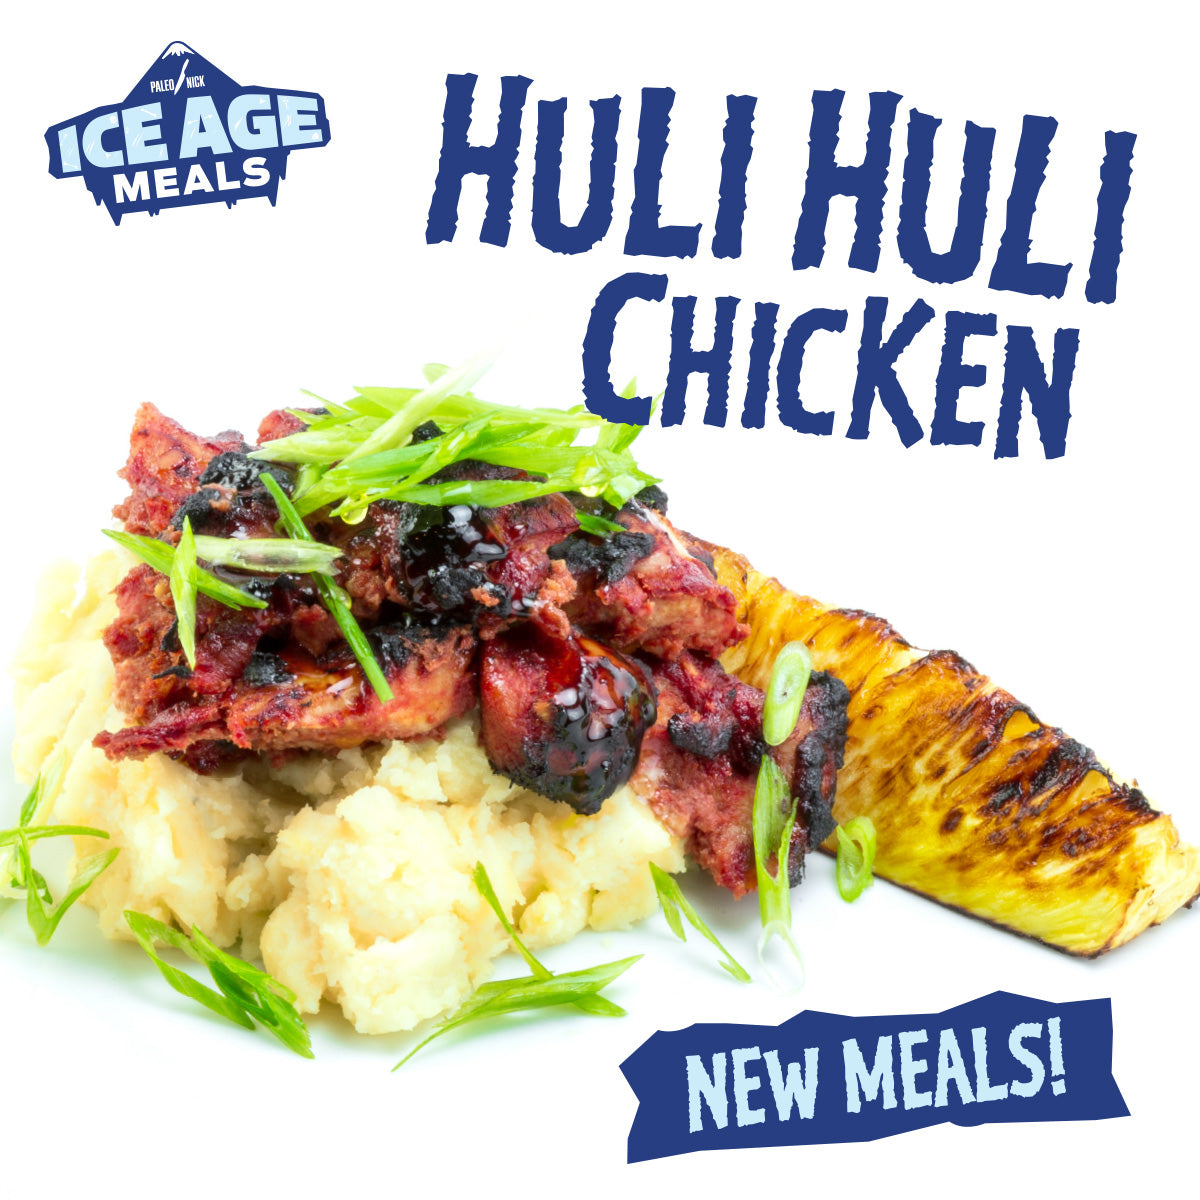 New Meals, Save Big, Win Huge!!!